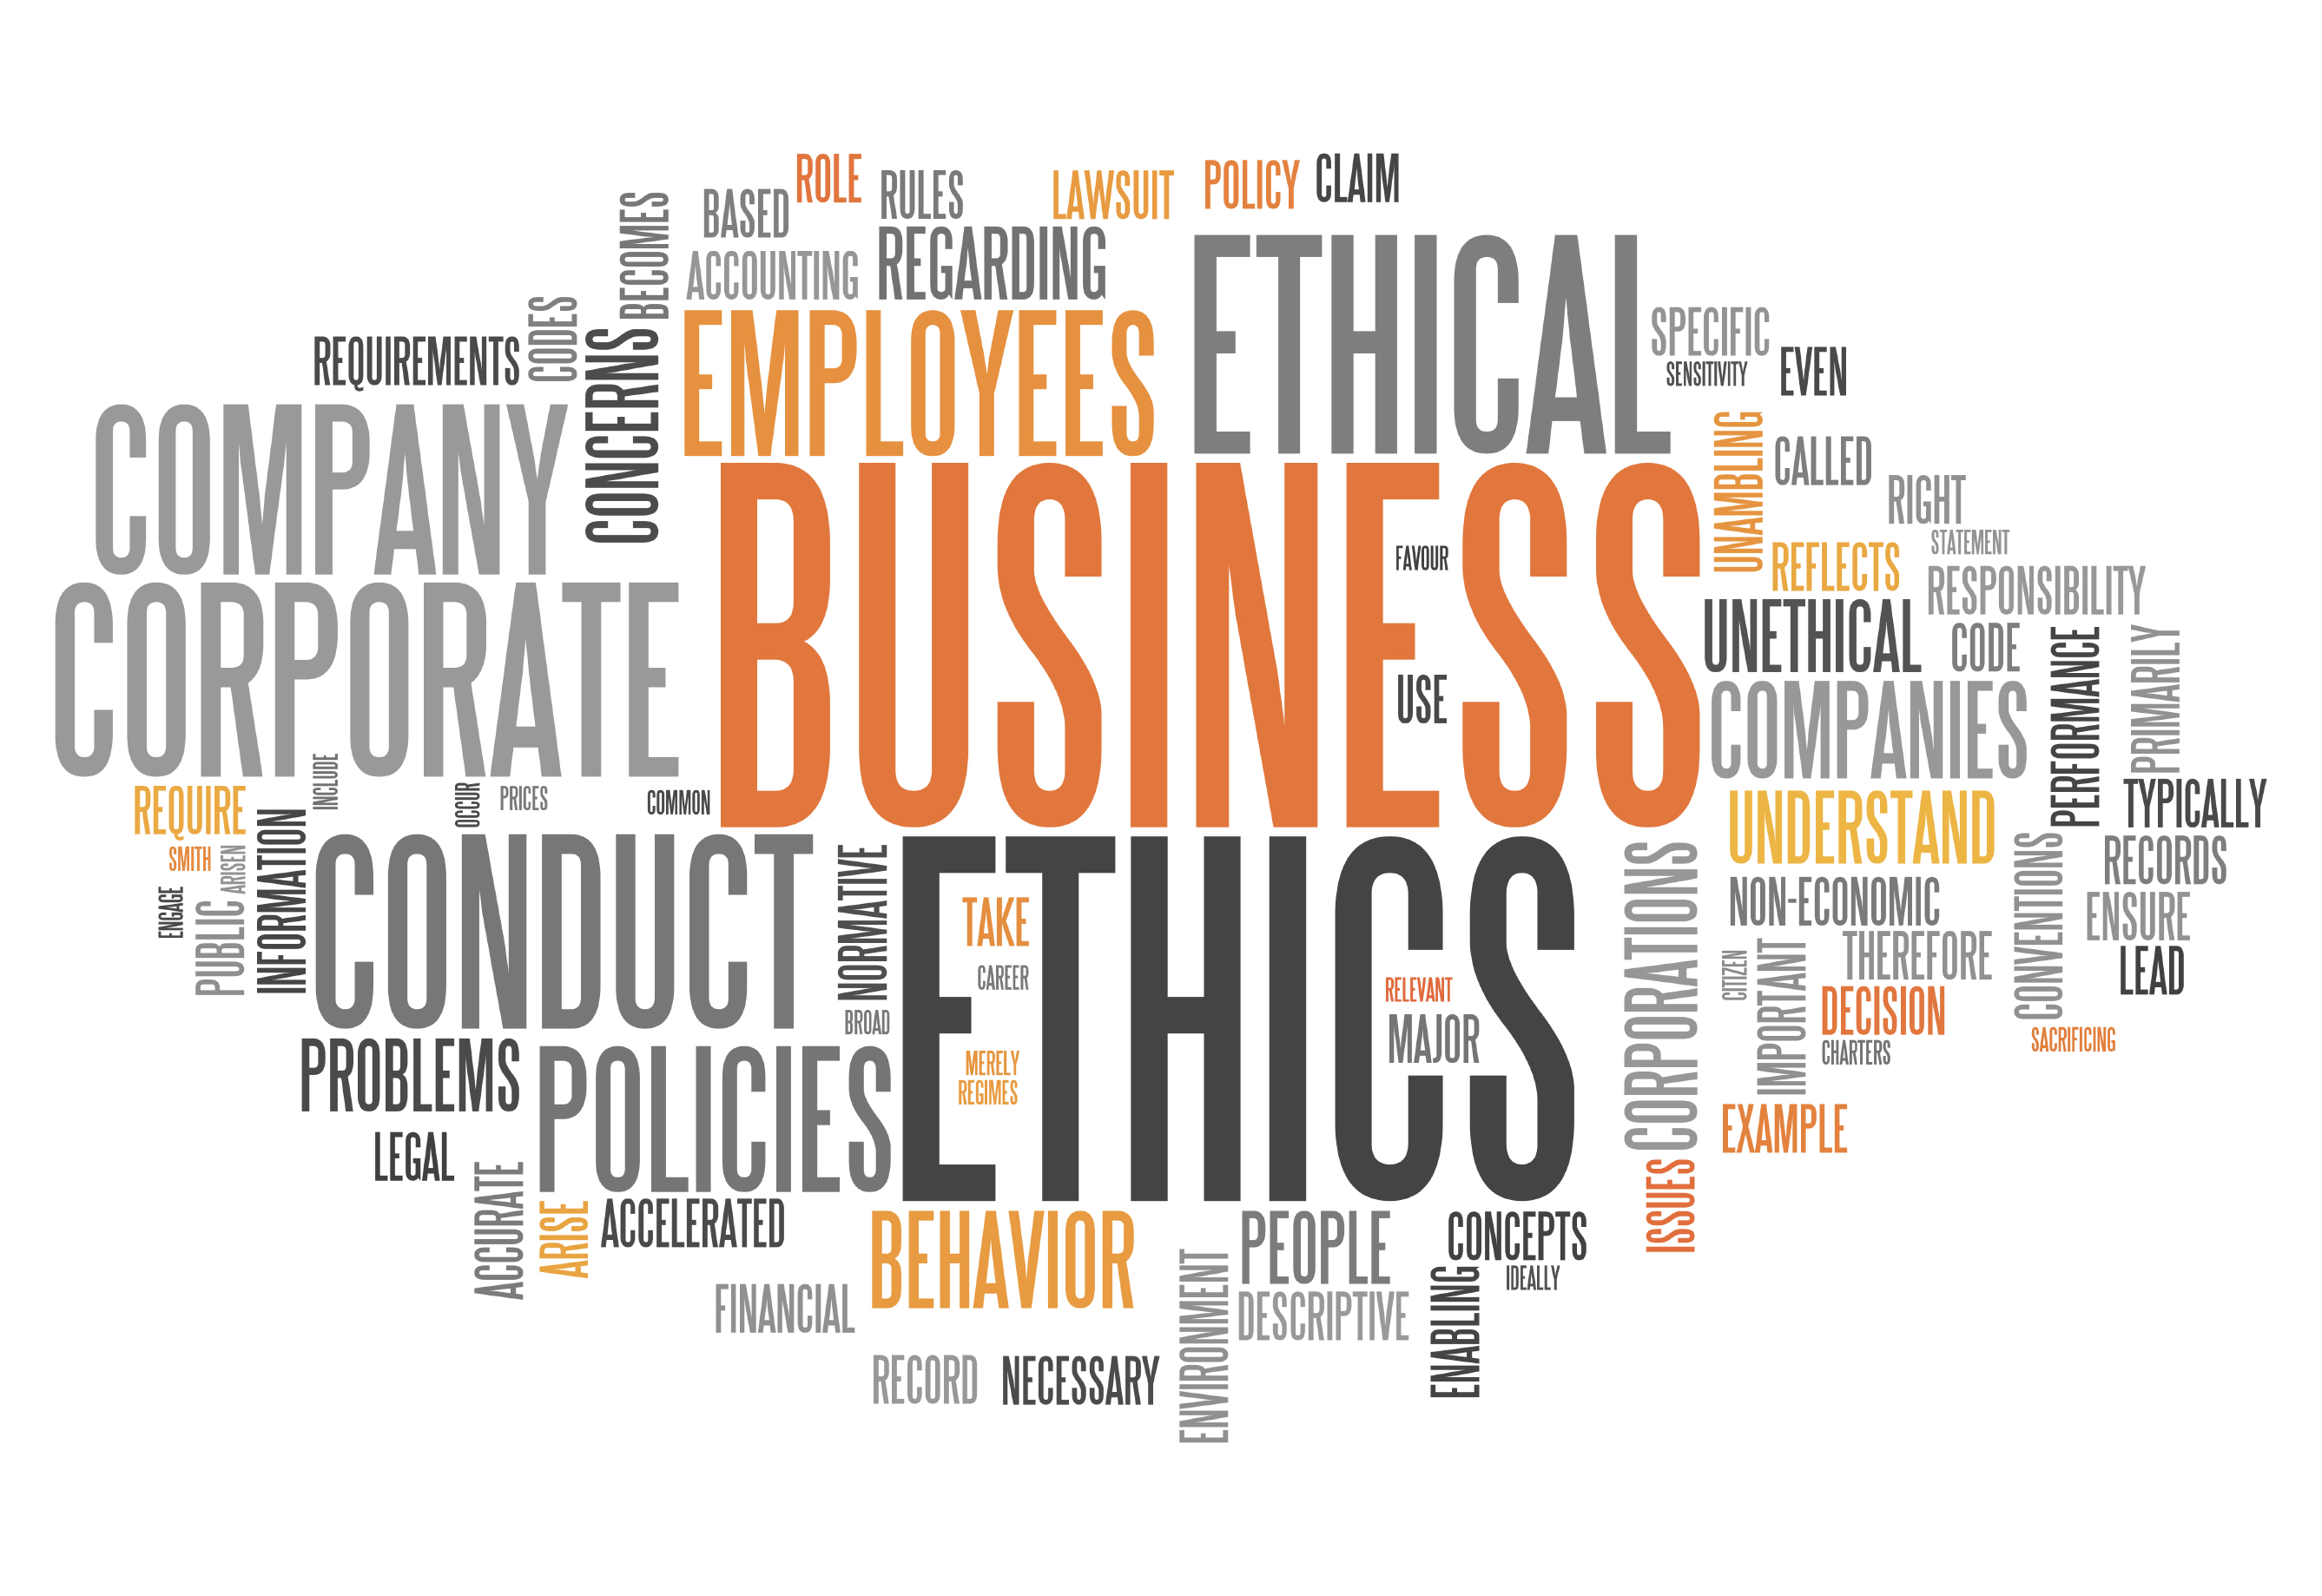 the importance of ethics and values in business None of the core values relate to ethics, fair treatment, etc us steel ko š ice, sro, on the other hand, m akes ethics one of its main priorities in both its statements as well as behavior.